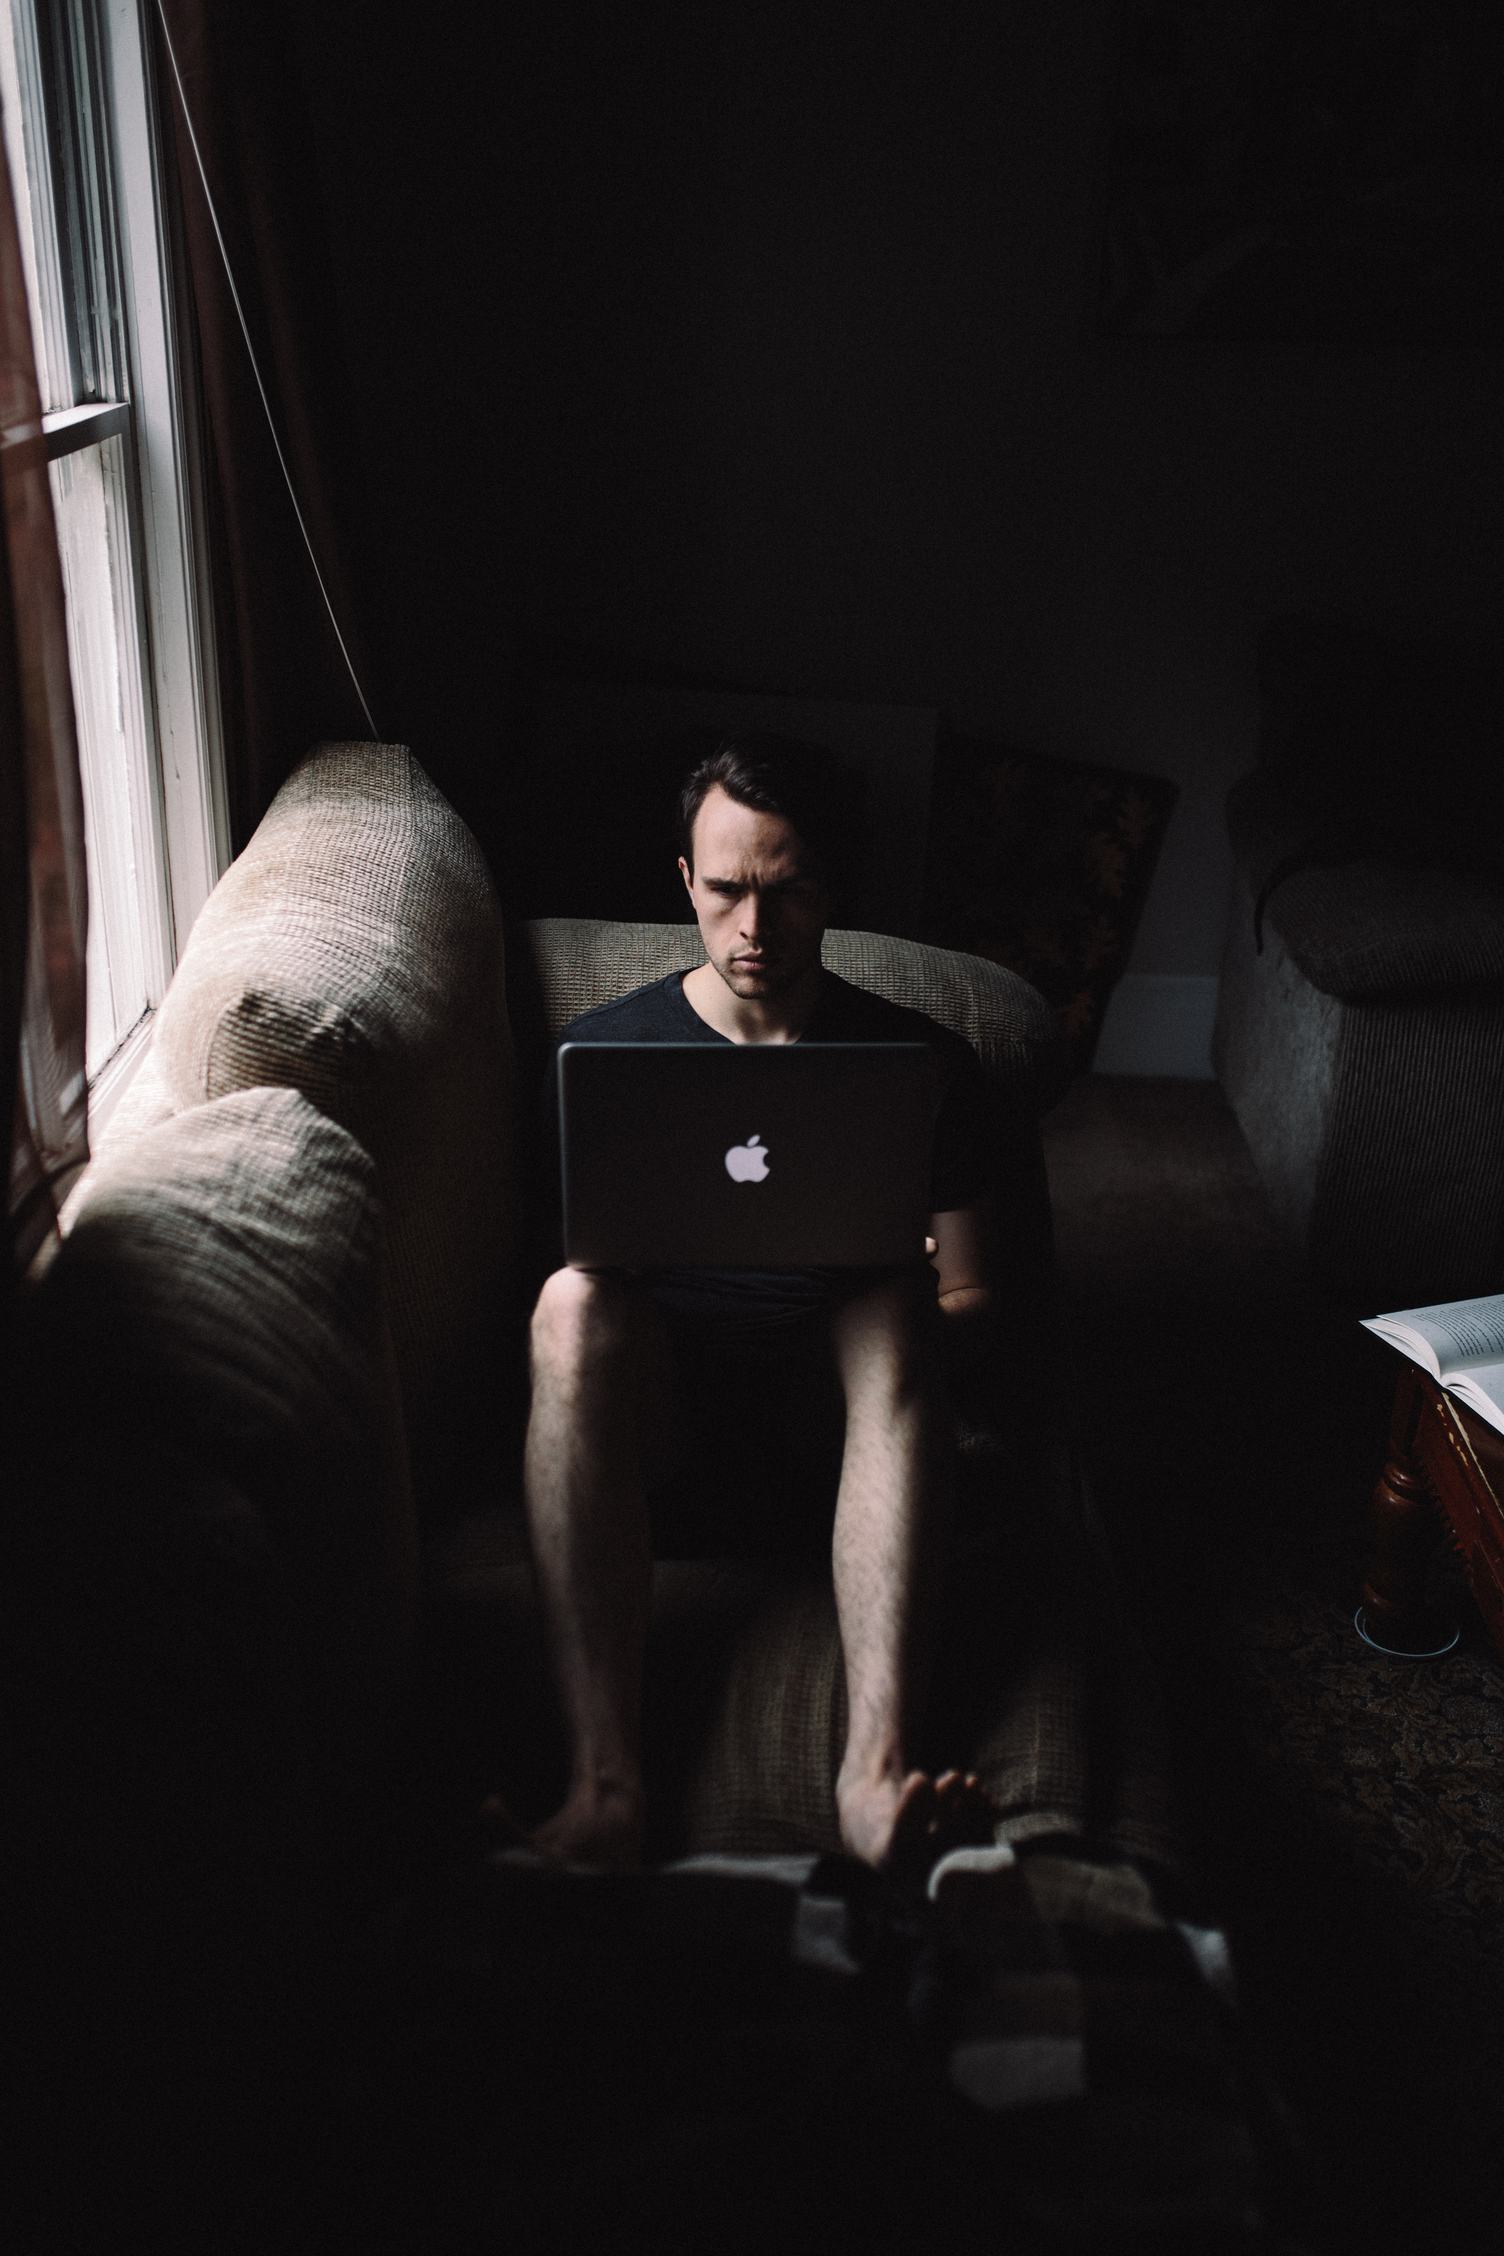 Man Working on his Laptop on the Sofa at Home